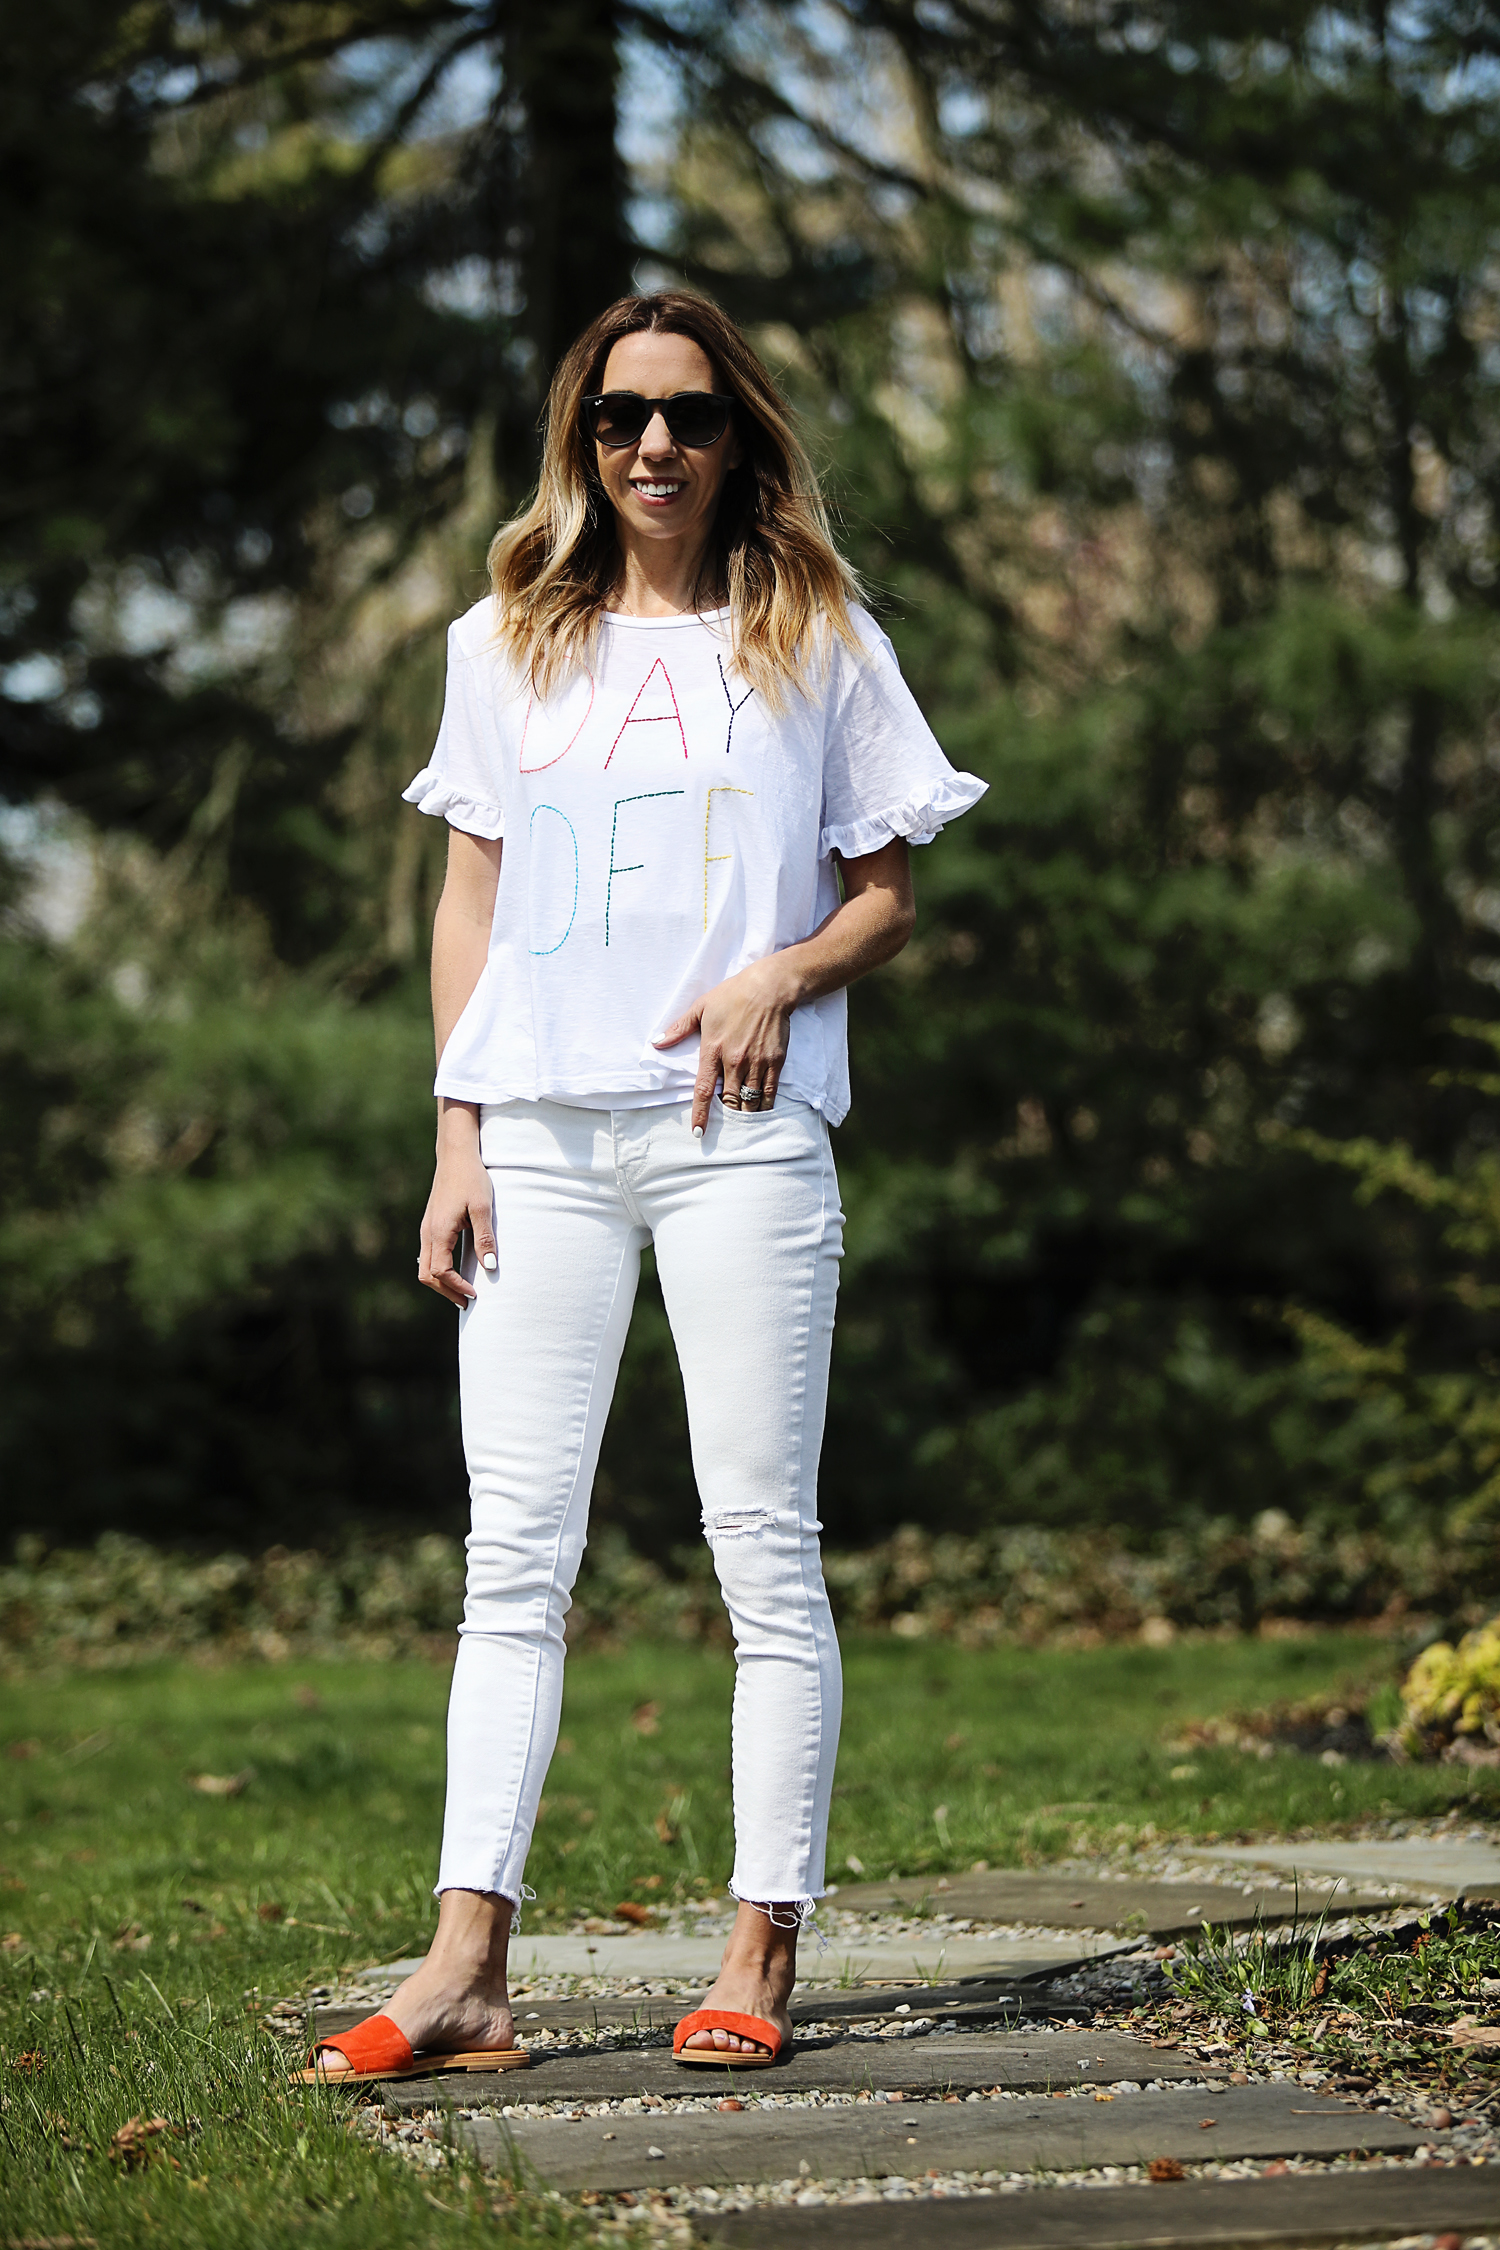 The Motherchic wearing white denim levi's